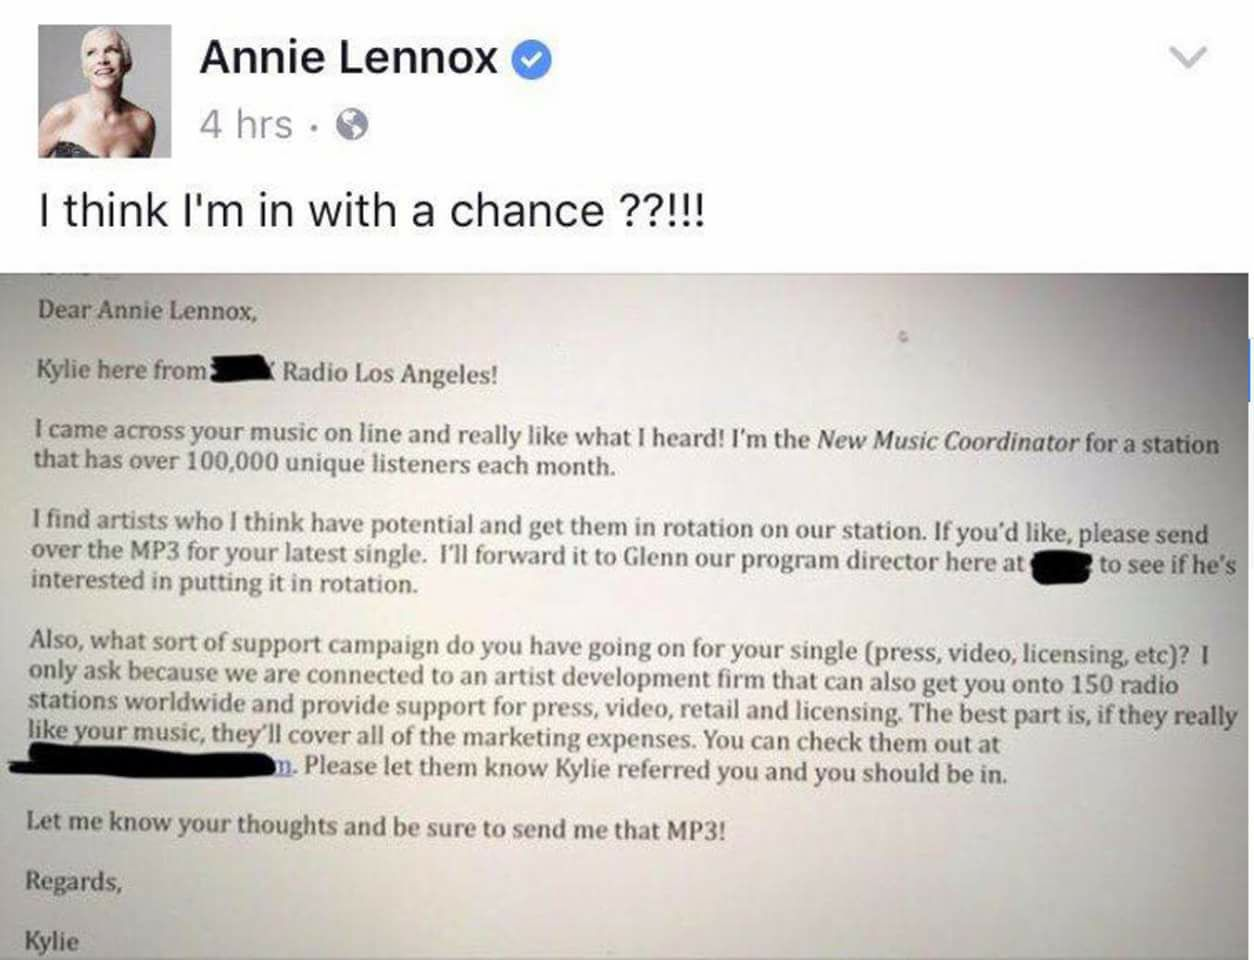 Annie Lennox is Spammed by the Fake Radio Station Scammer.